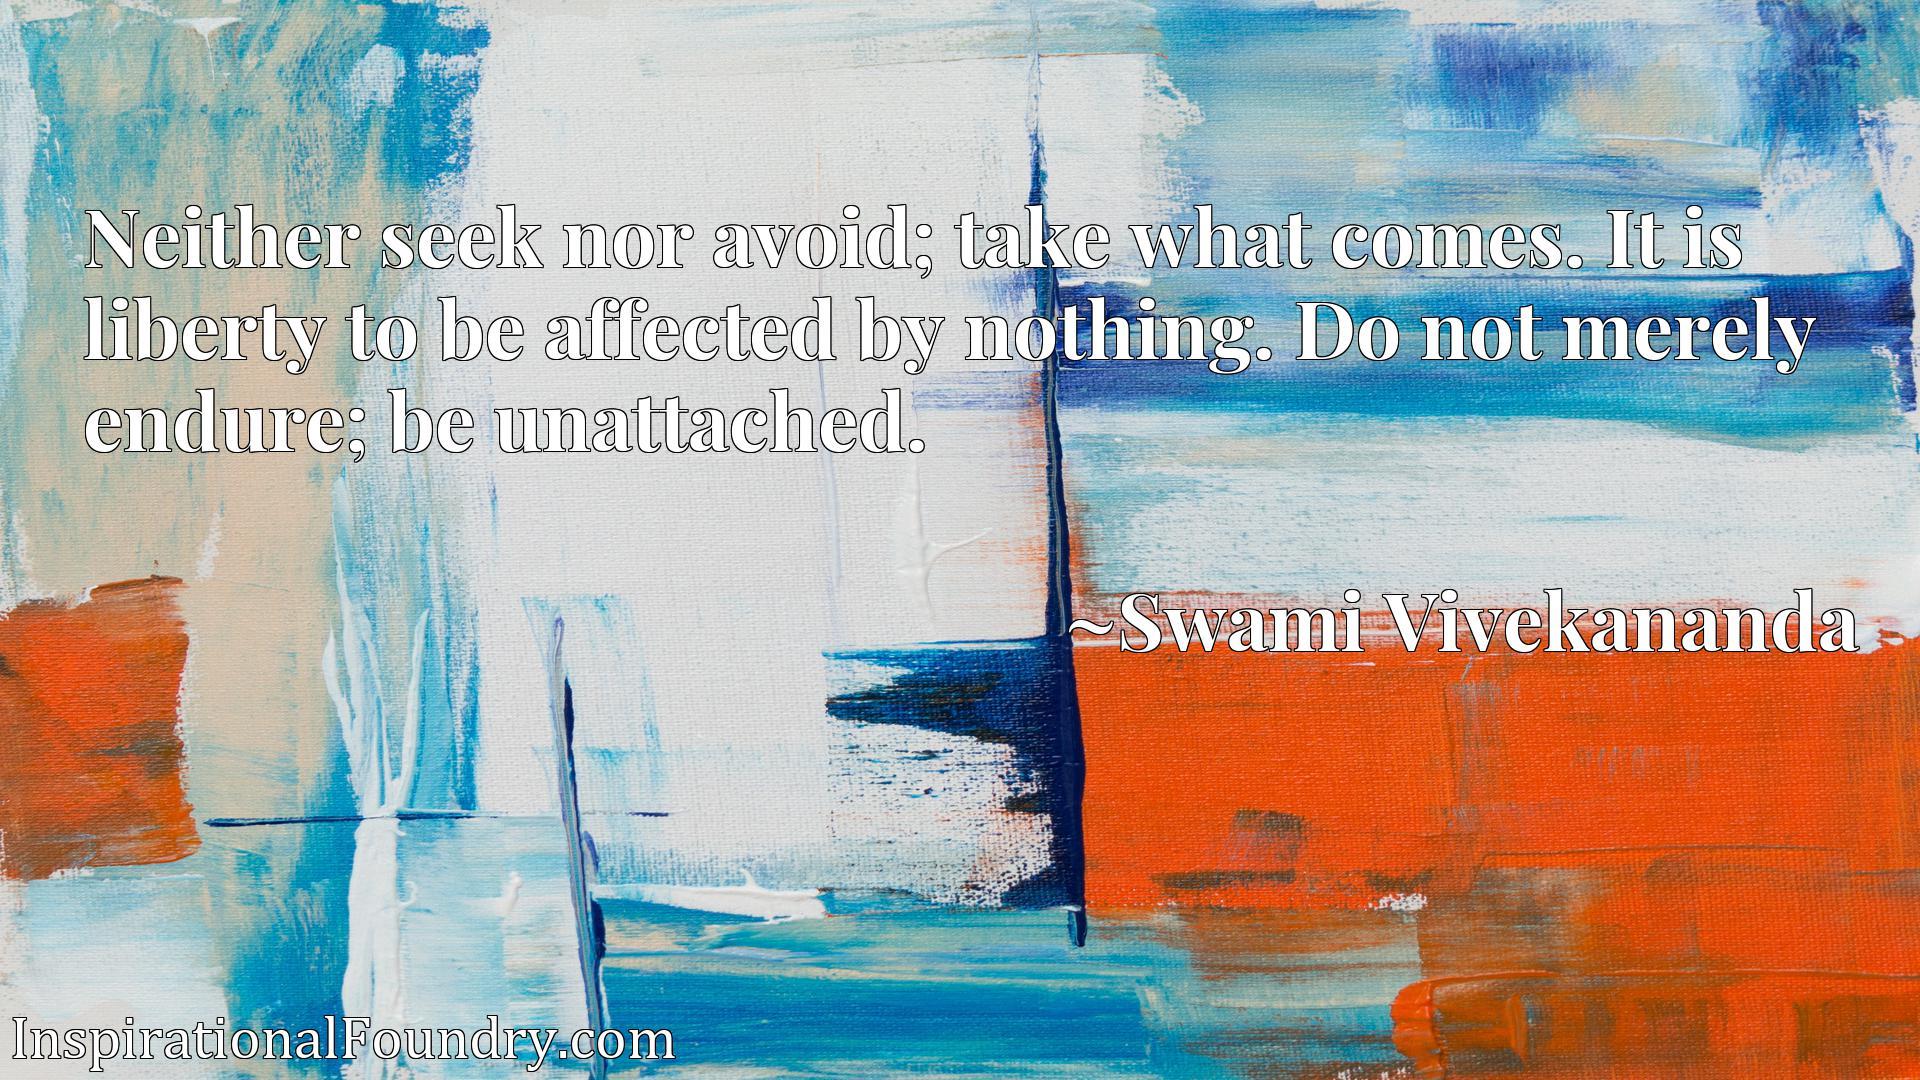 Neither seek nor avoid; take what comes. It is liberty to be affected by nothing. Do not merely endure; be unattached.